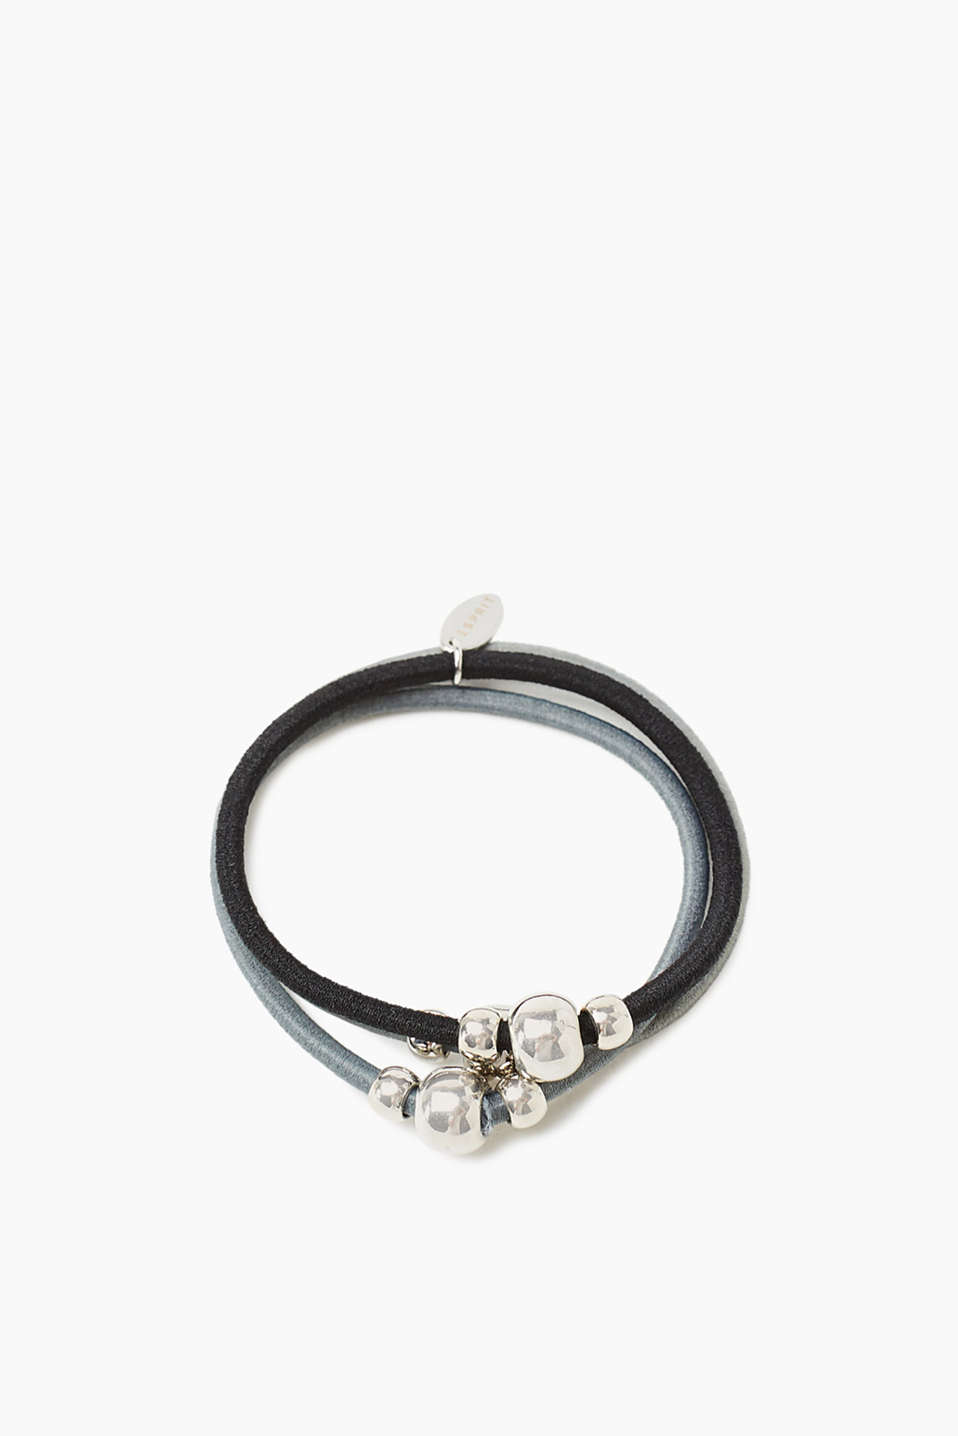 Esprit - Bracelet/hair tie with metal balls